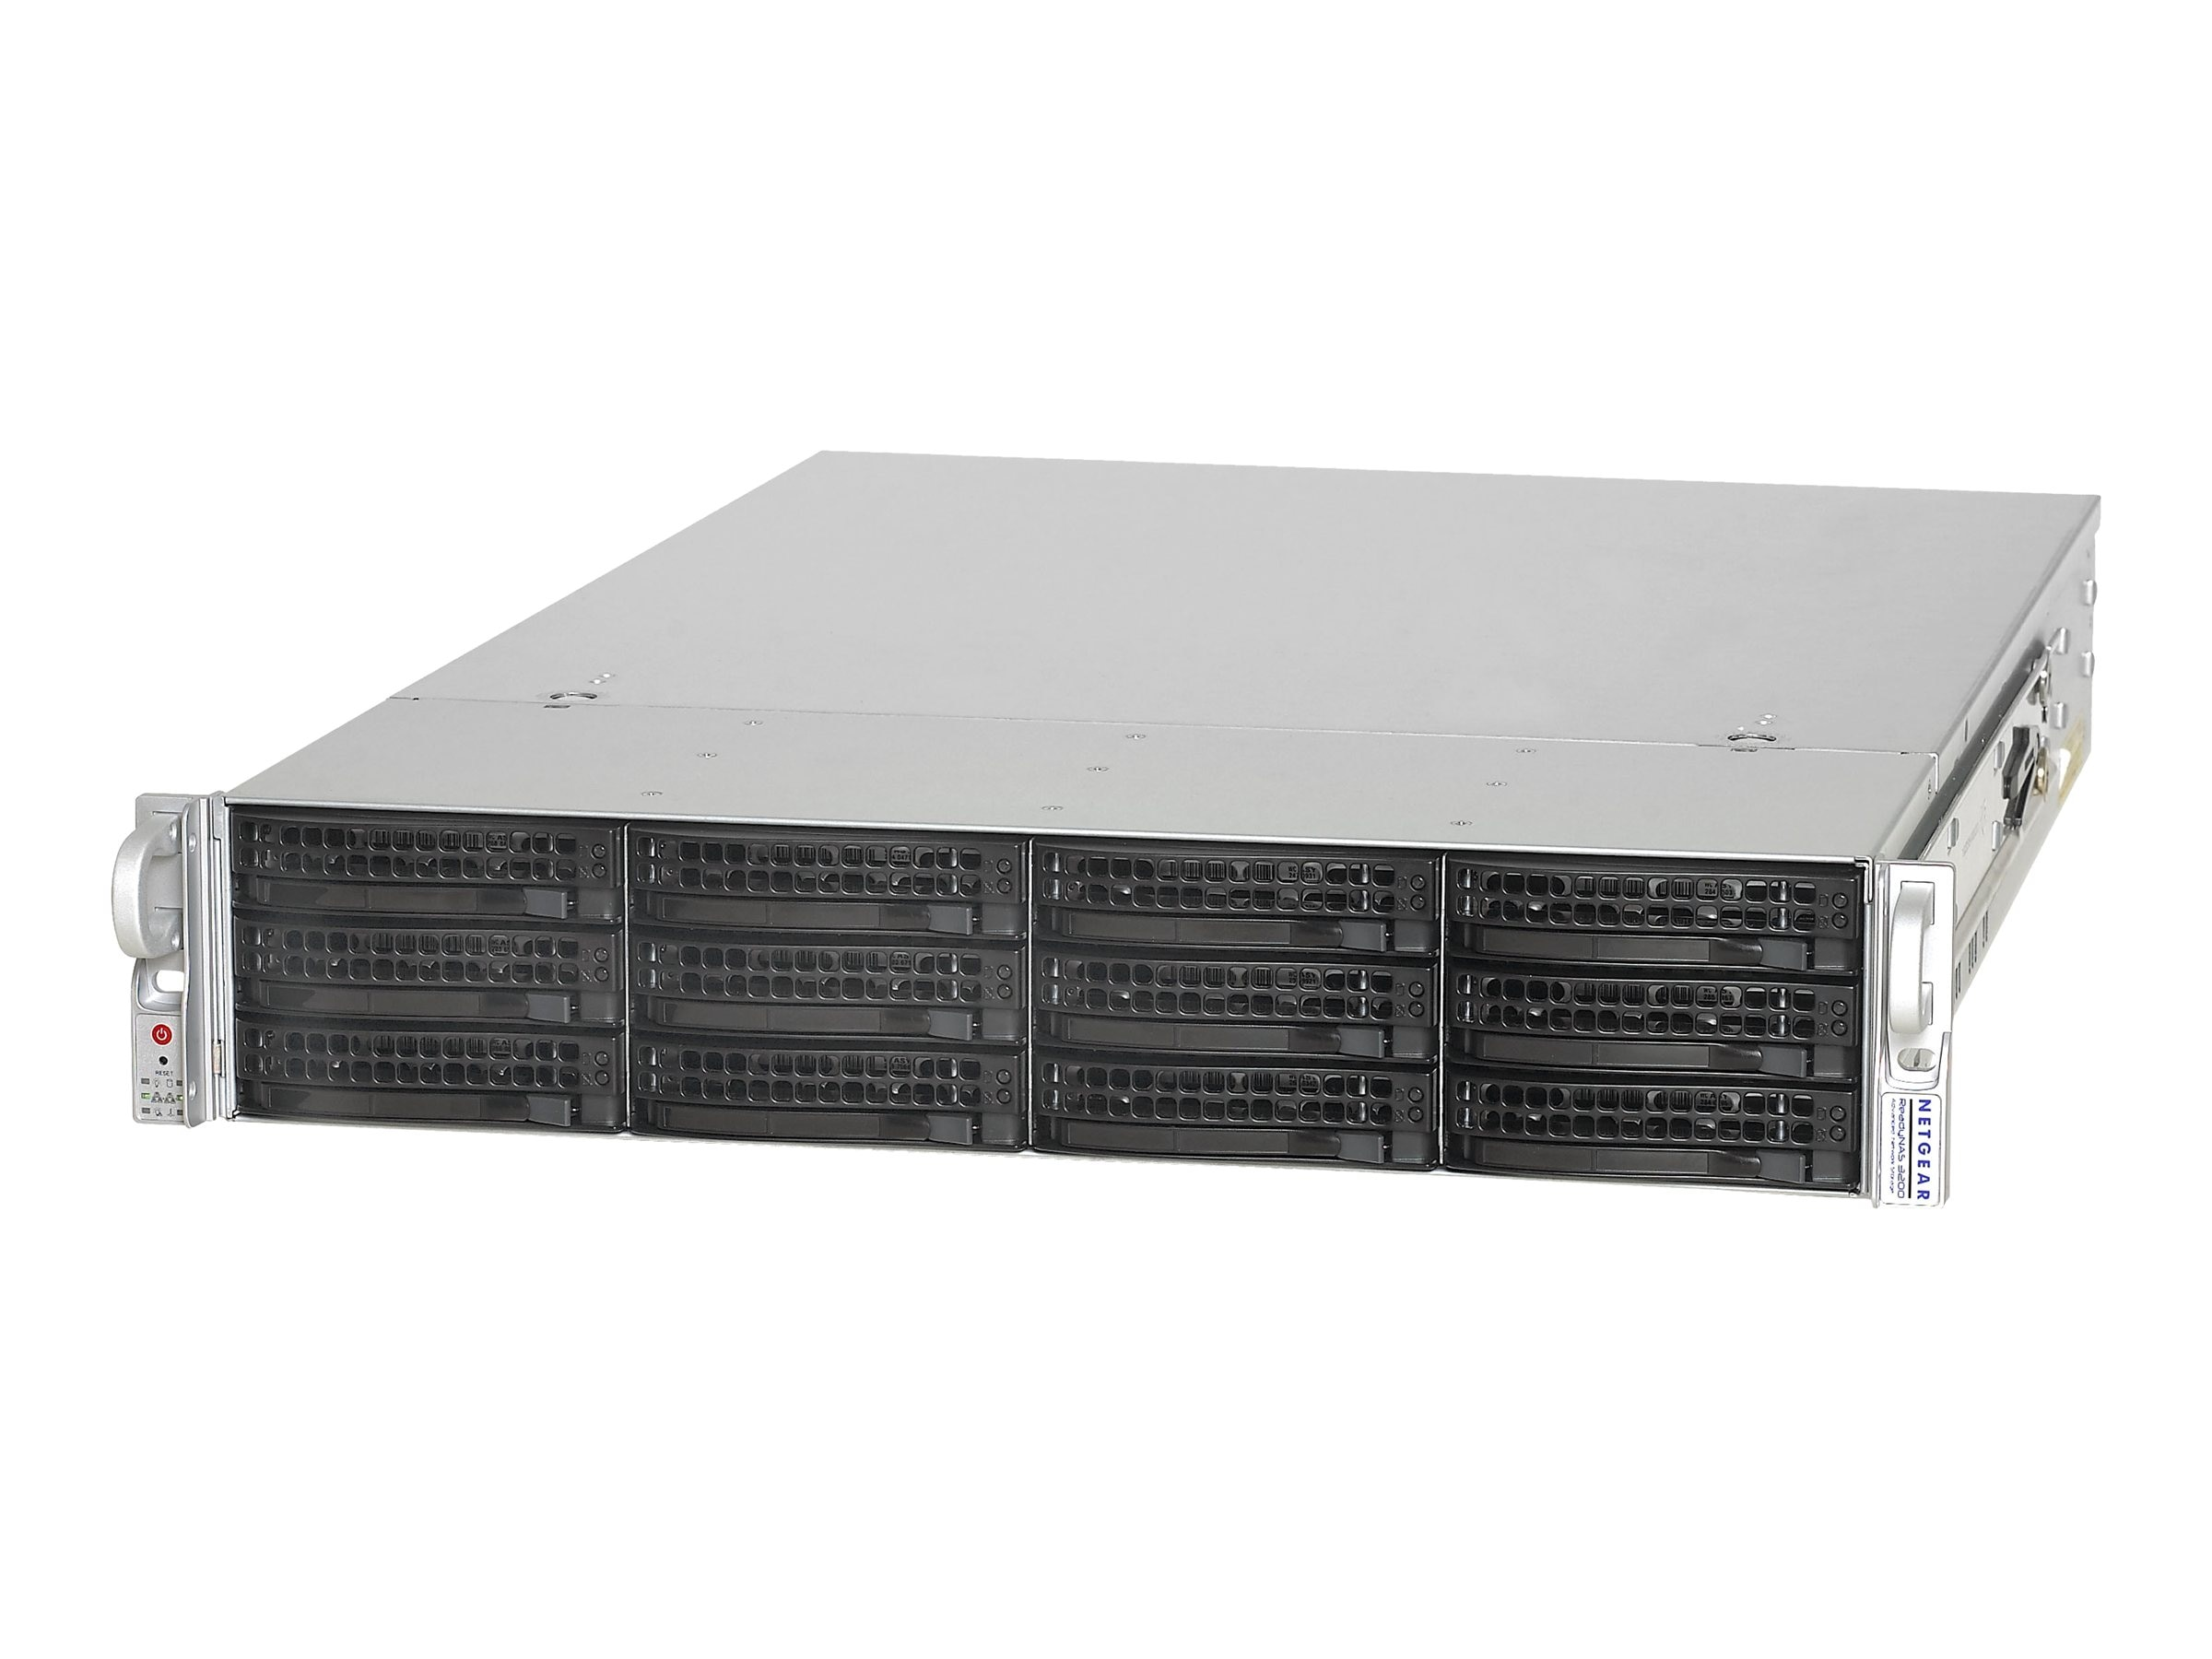 Netgear 12TB ReadyNAS 3200 Network Storage System, RN12P1210-100NAS, 10106651, Network Attached Storage